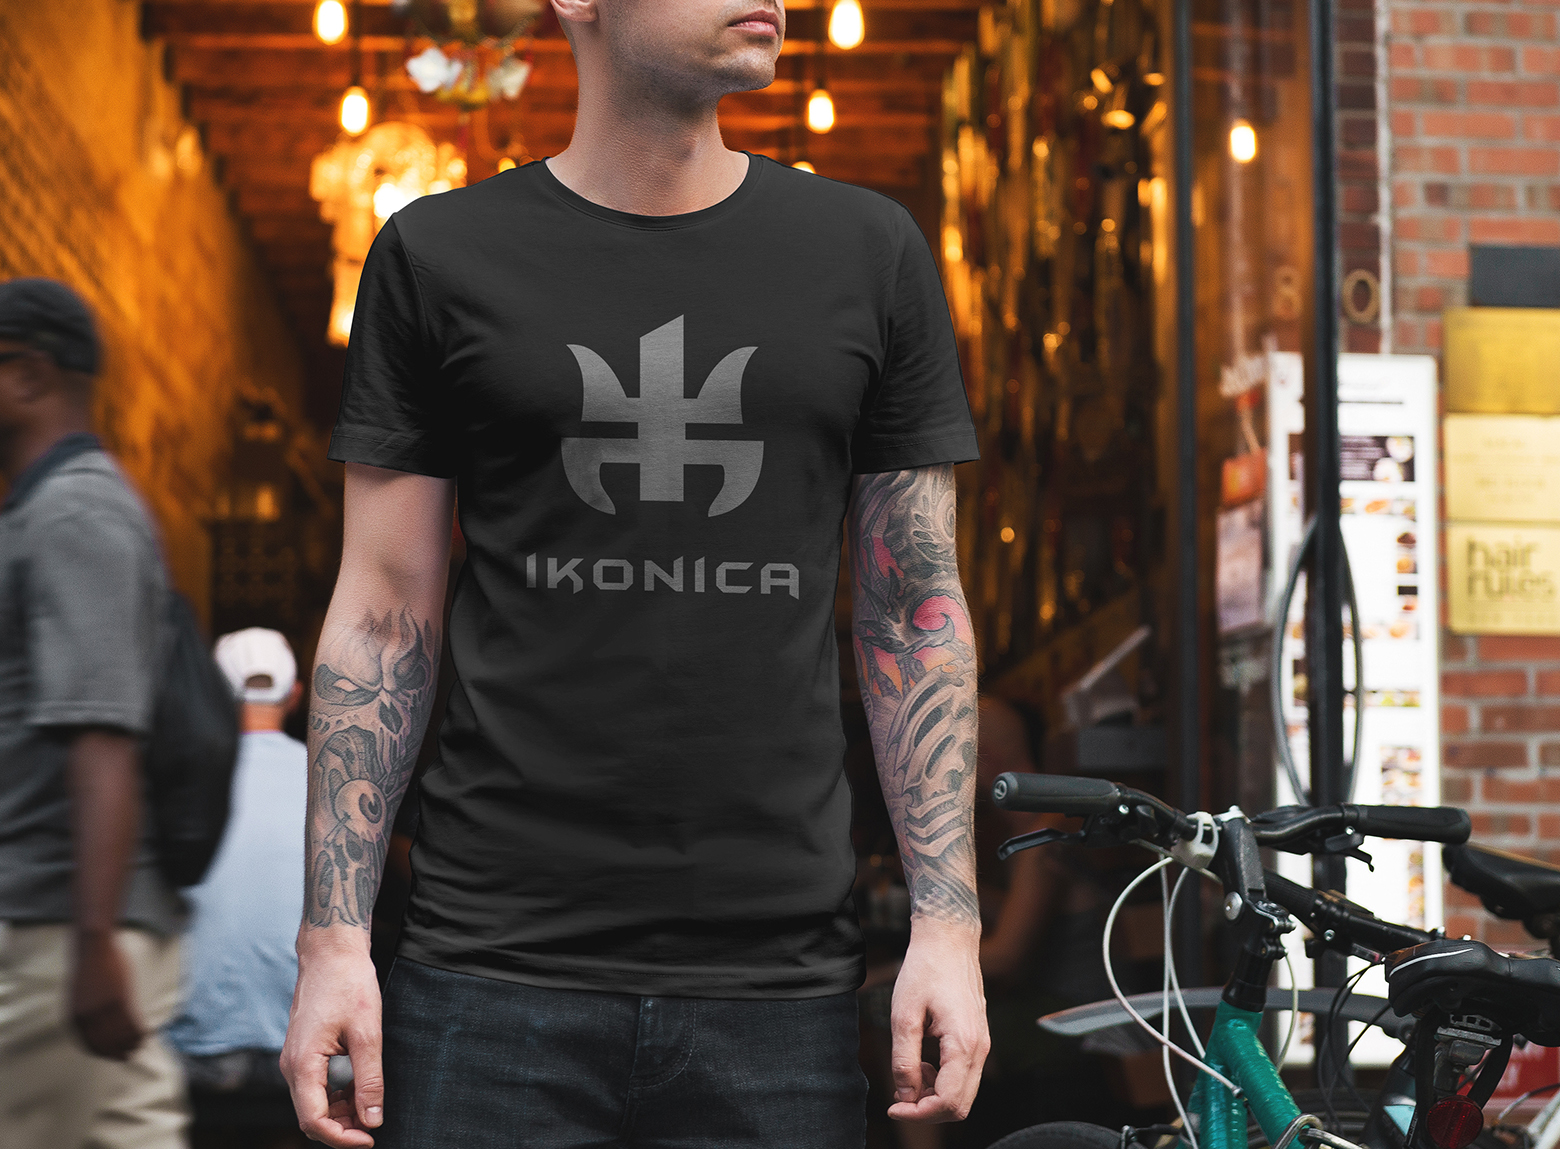 design tshirt logotipo ikonica por switch studio